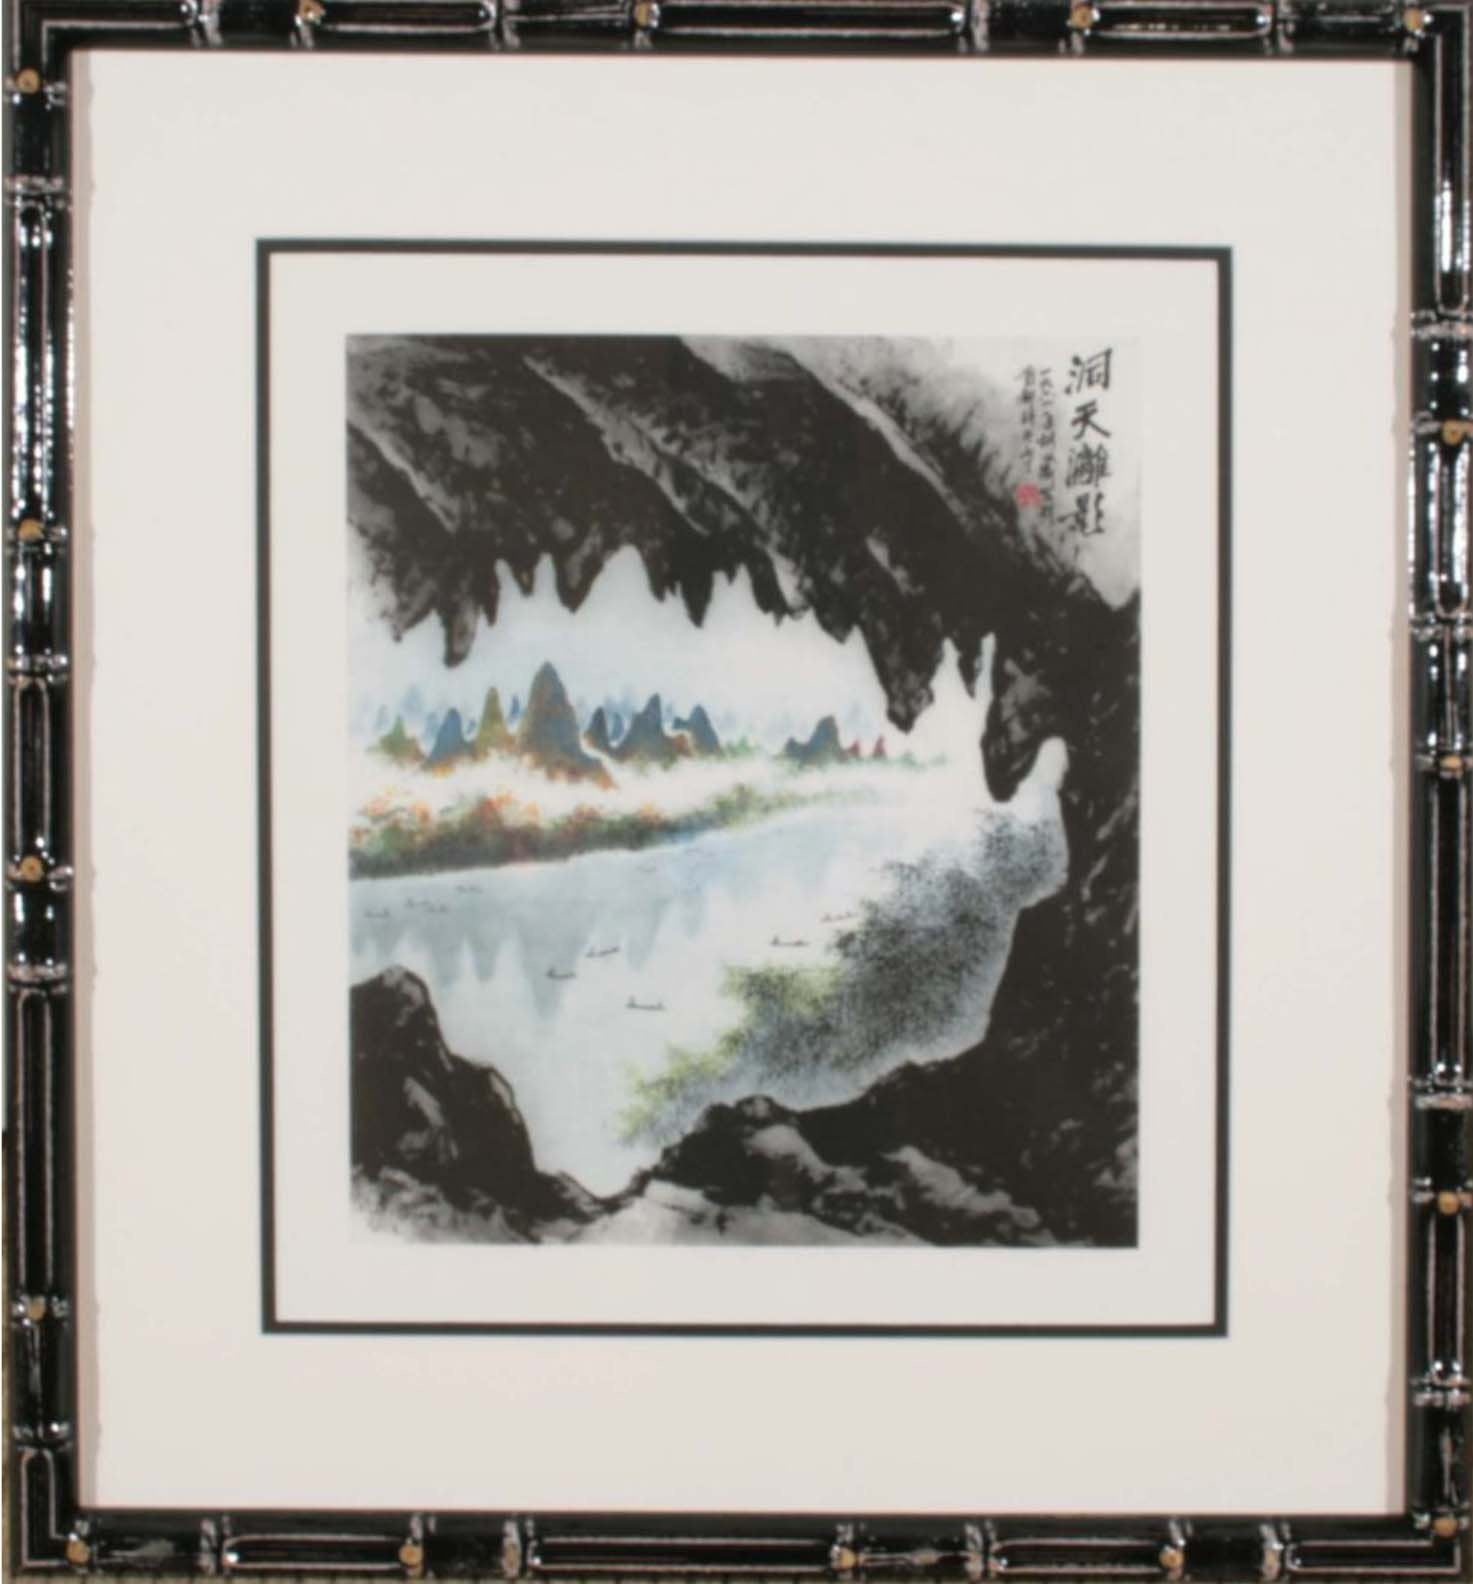 Unknown, Chinese, View of River through Cave Poster - RoGallery